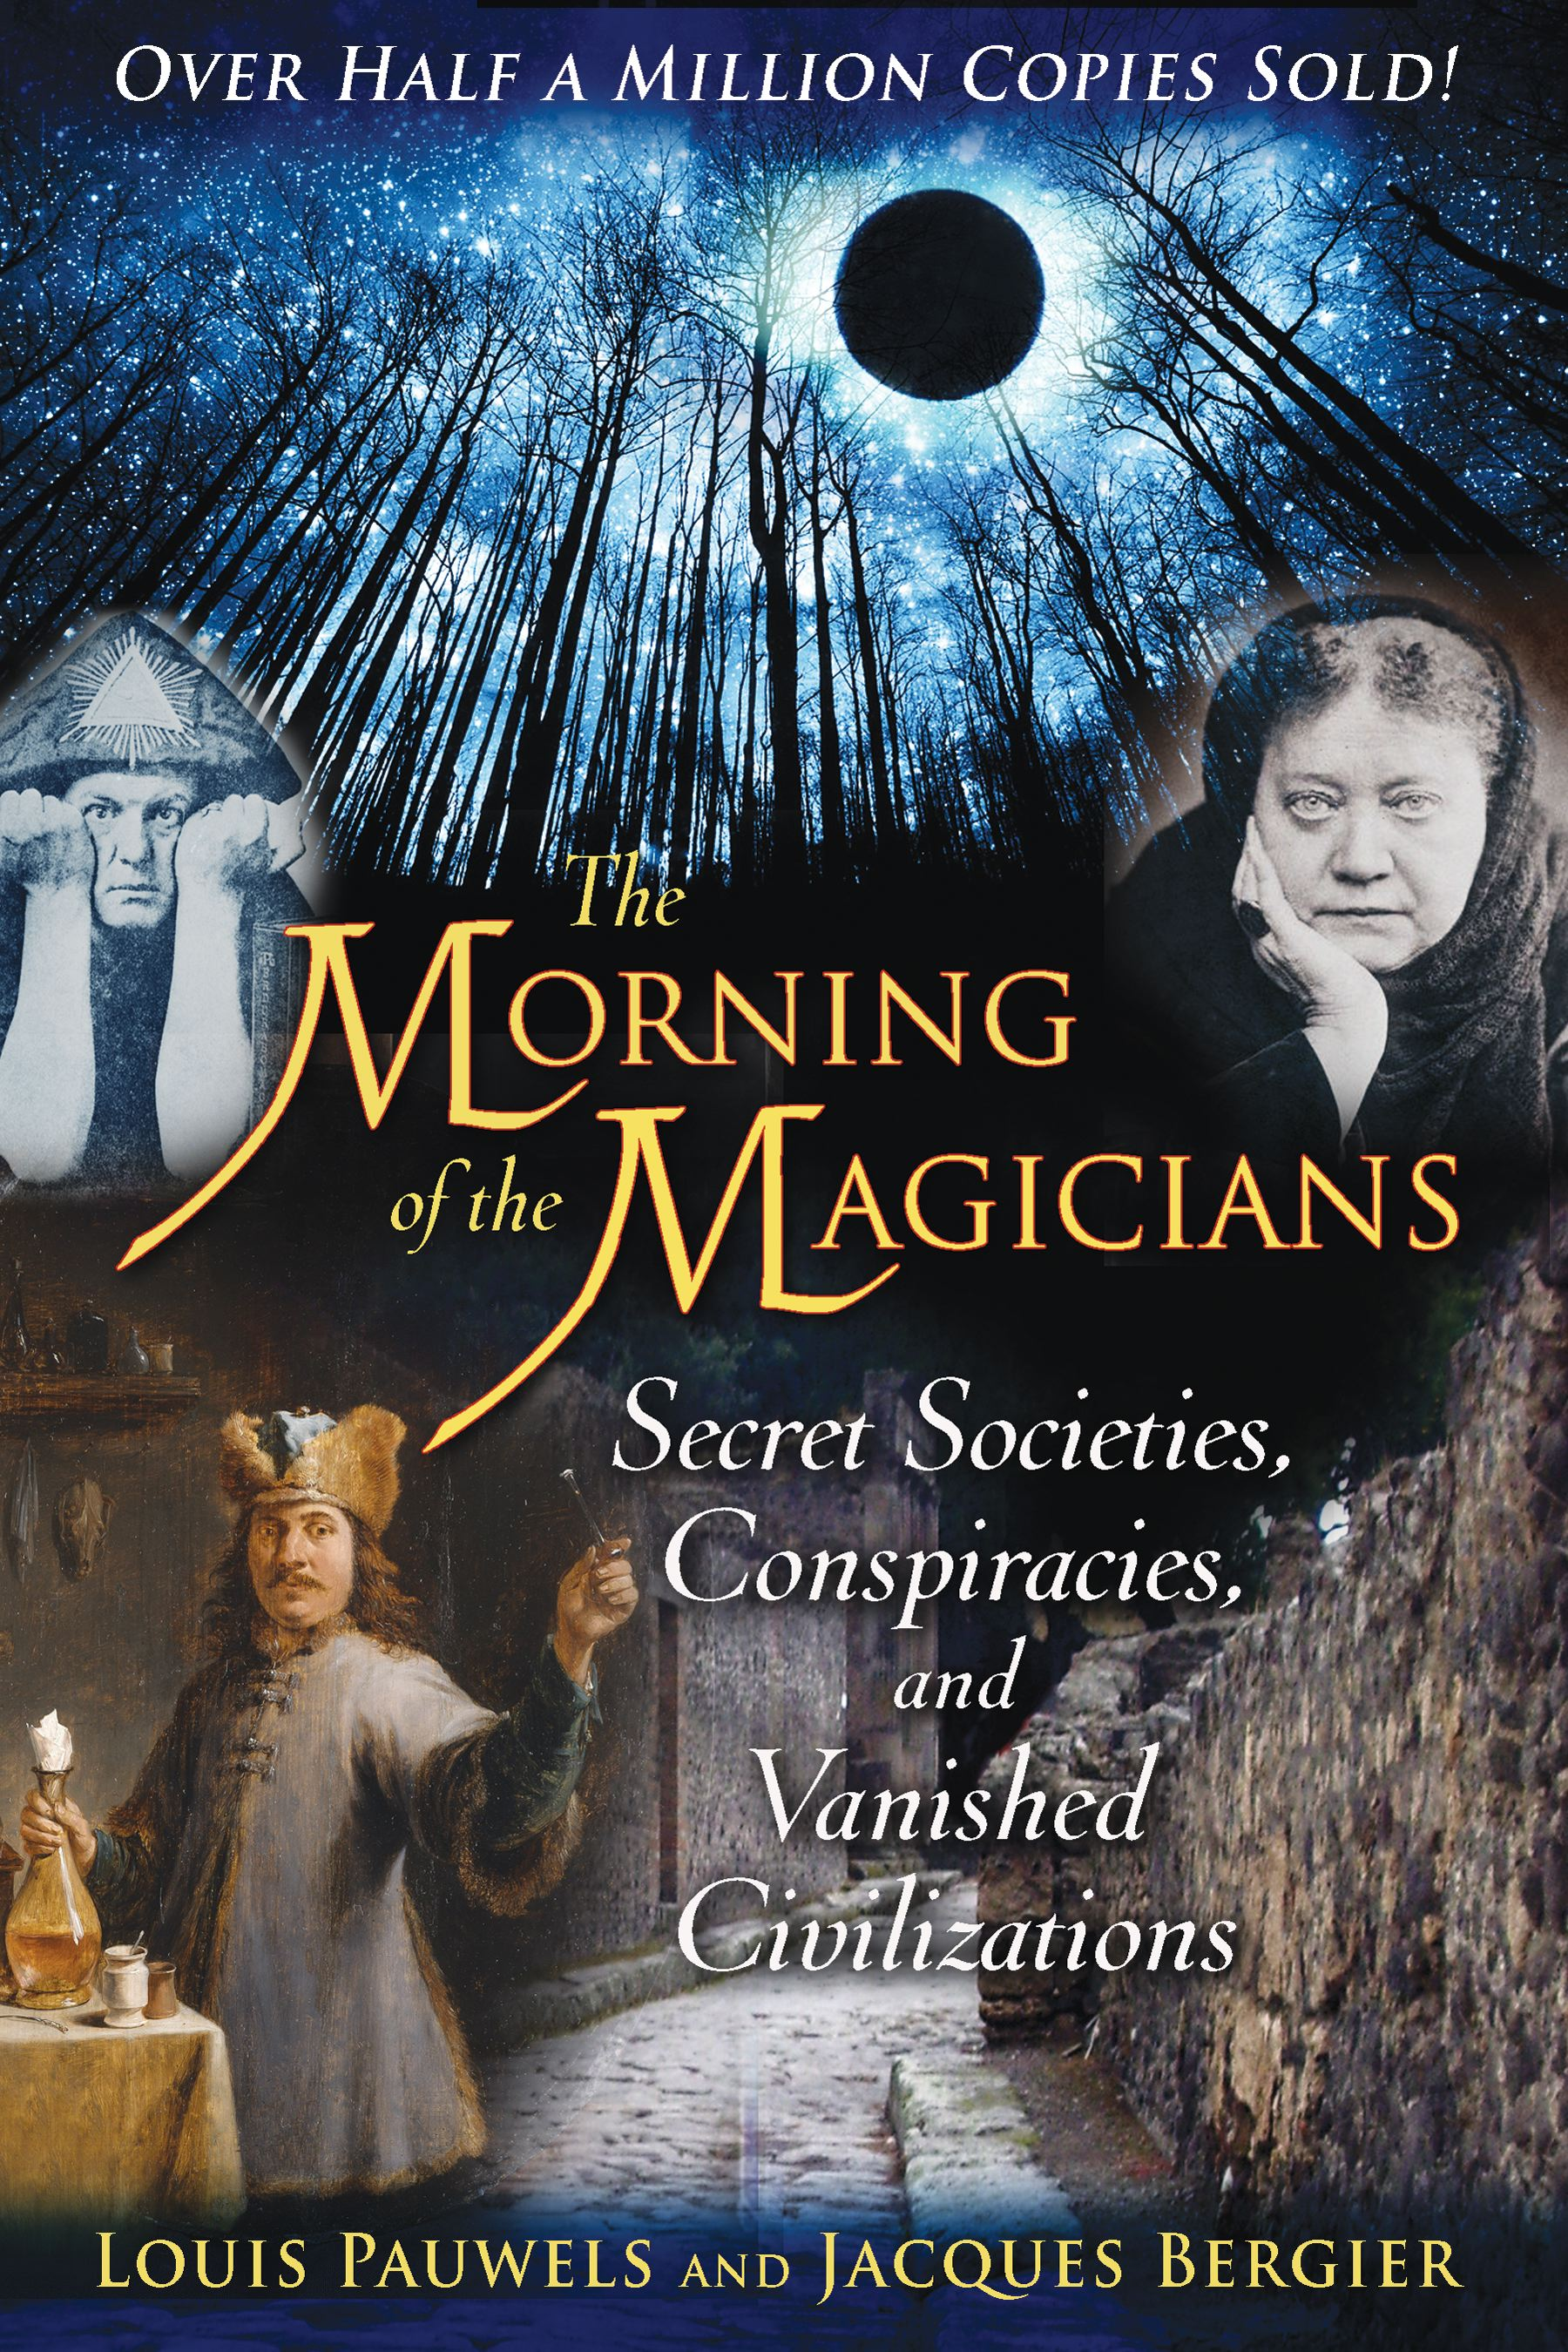 The morning of the magicians 9781594772313 hr